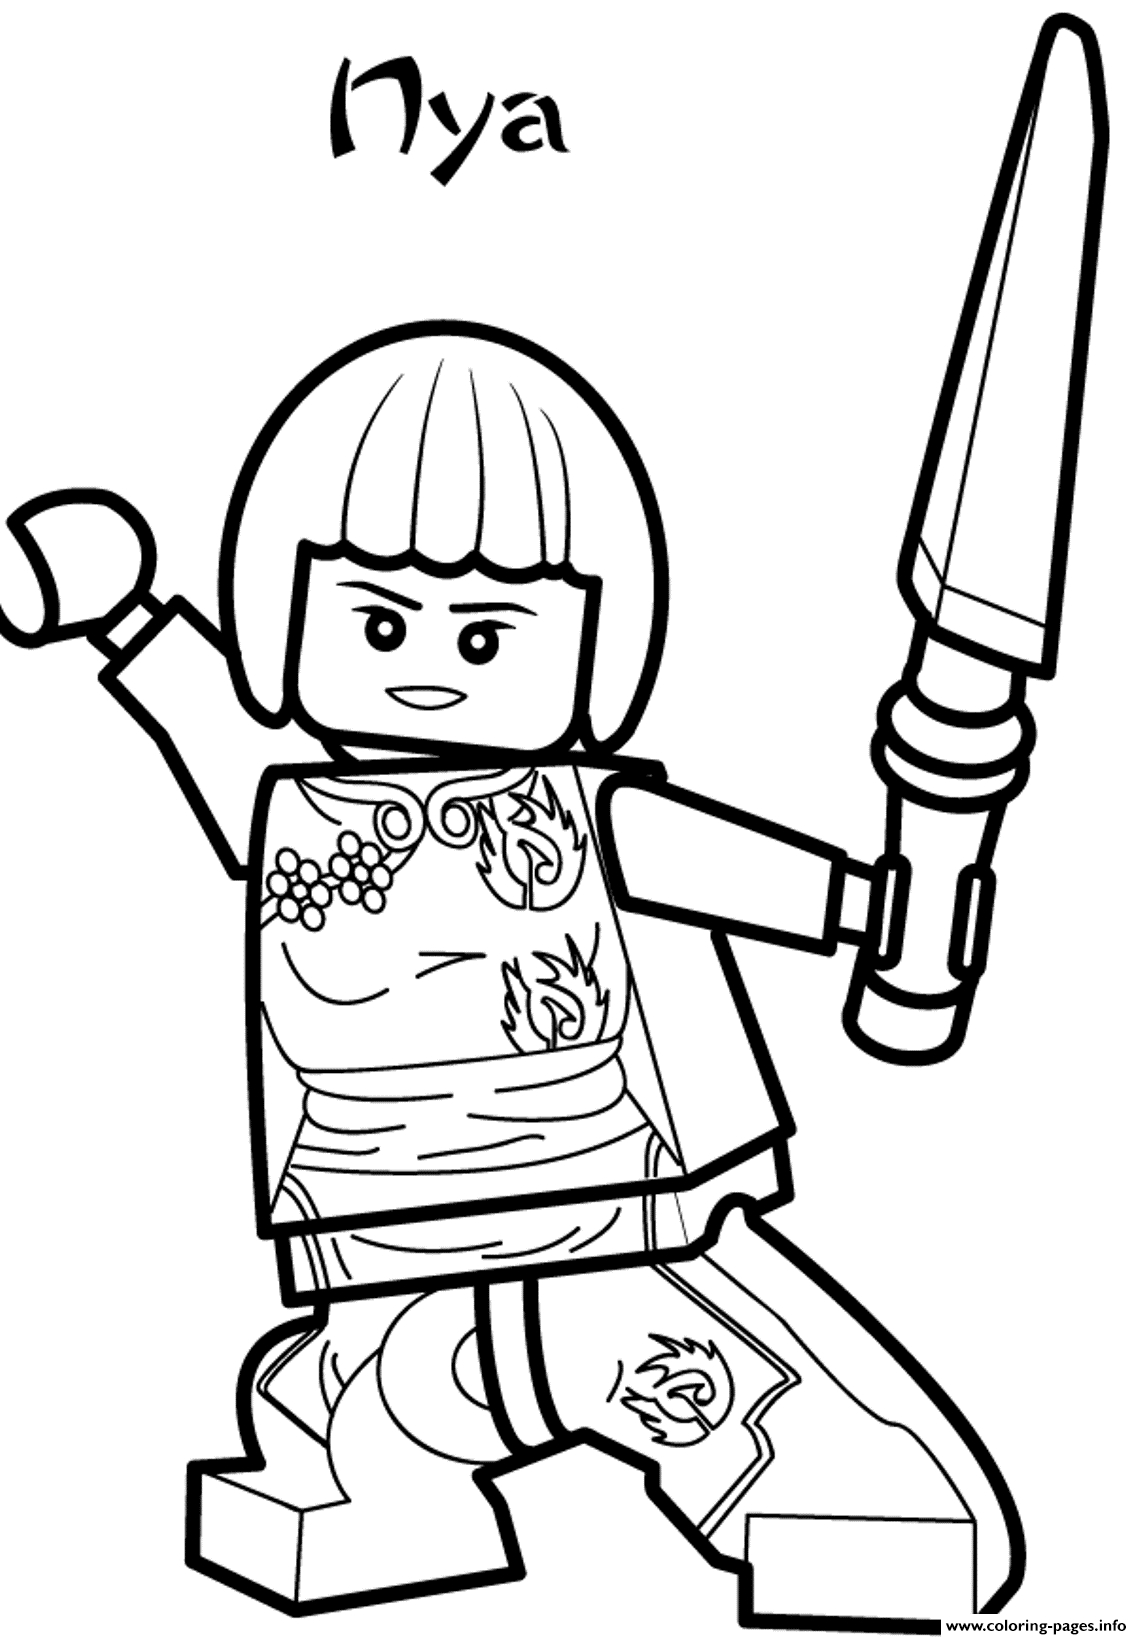 Ninjago Printable Coloring Pages - Nya Ninjago Sd2d8 Coloring Pages Printable